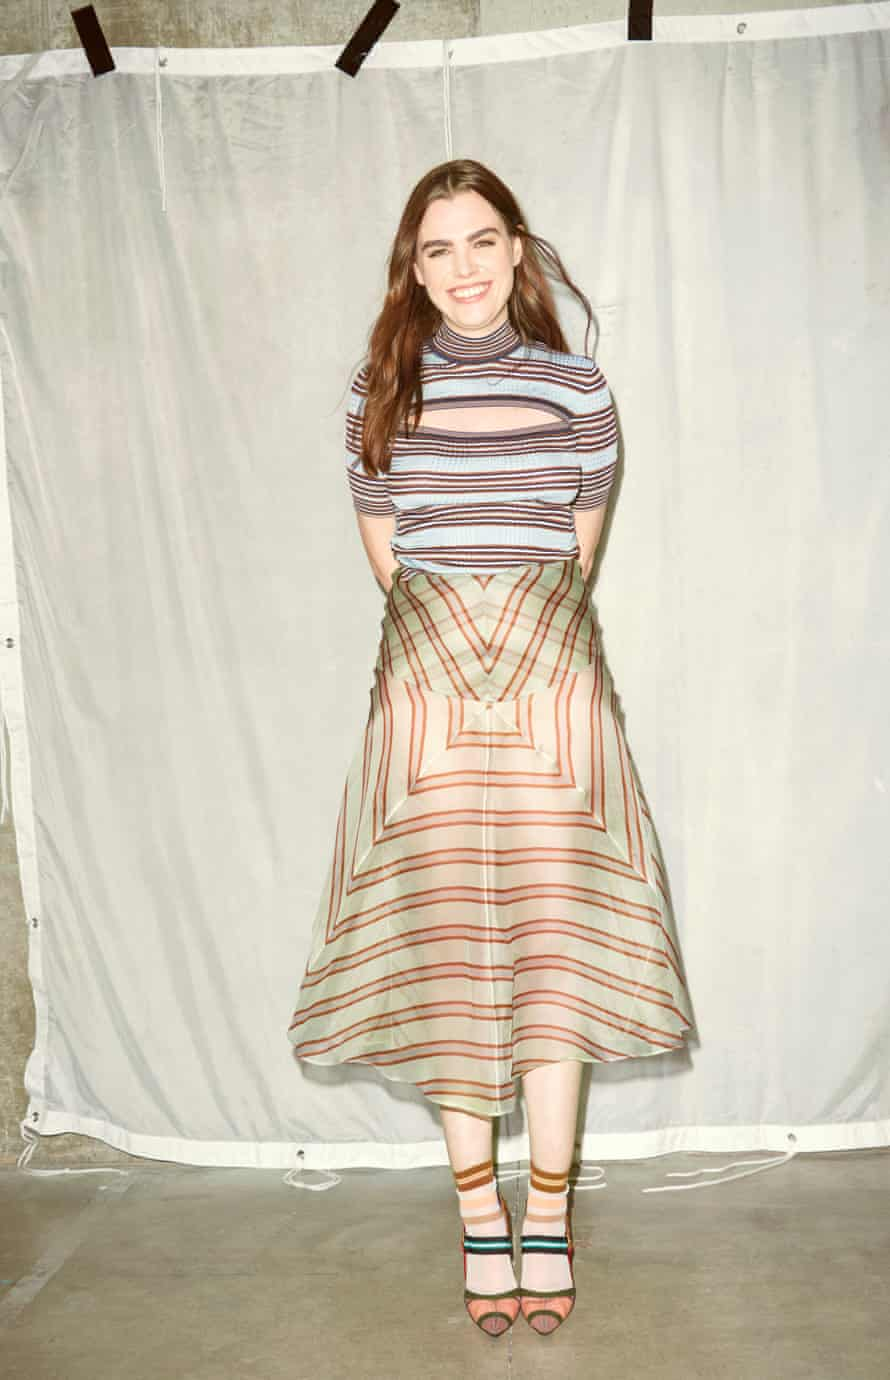 Charli wears top, skirt, socks and shoes all by Fendi.